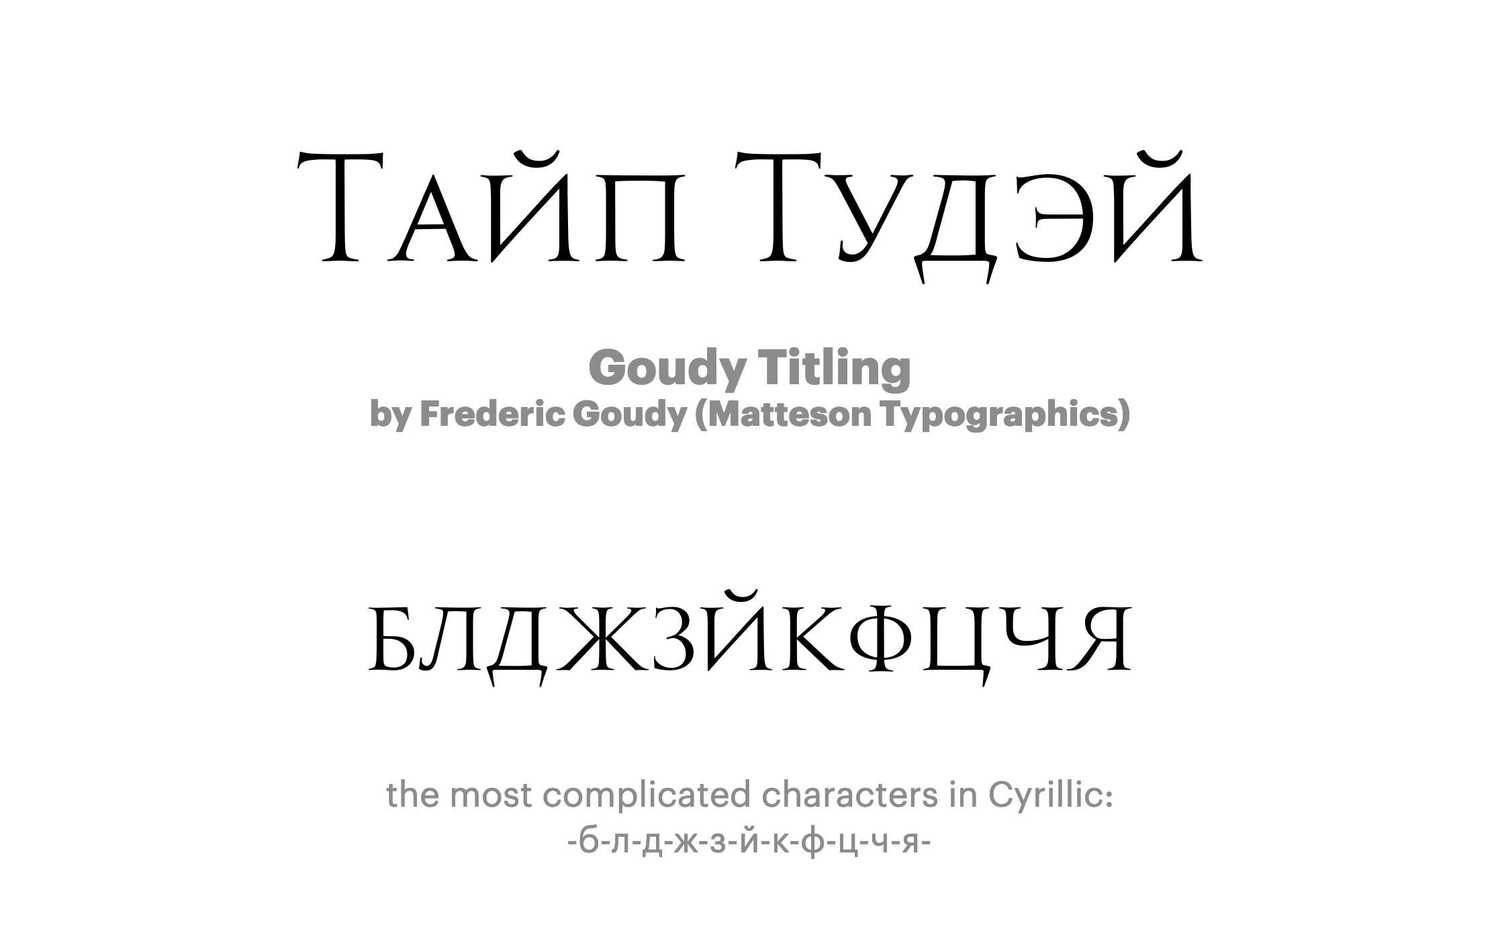 Goudy-Titling-by-Frederic-Goudy-(Matteson-Typographics)